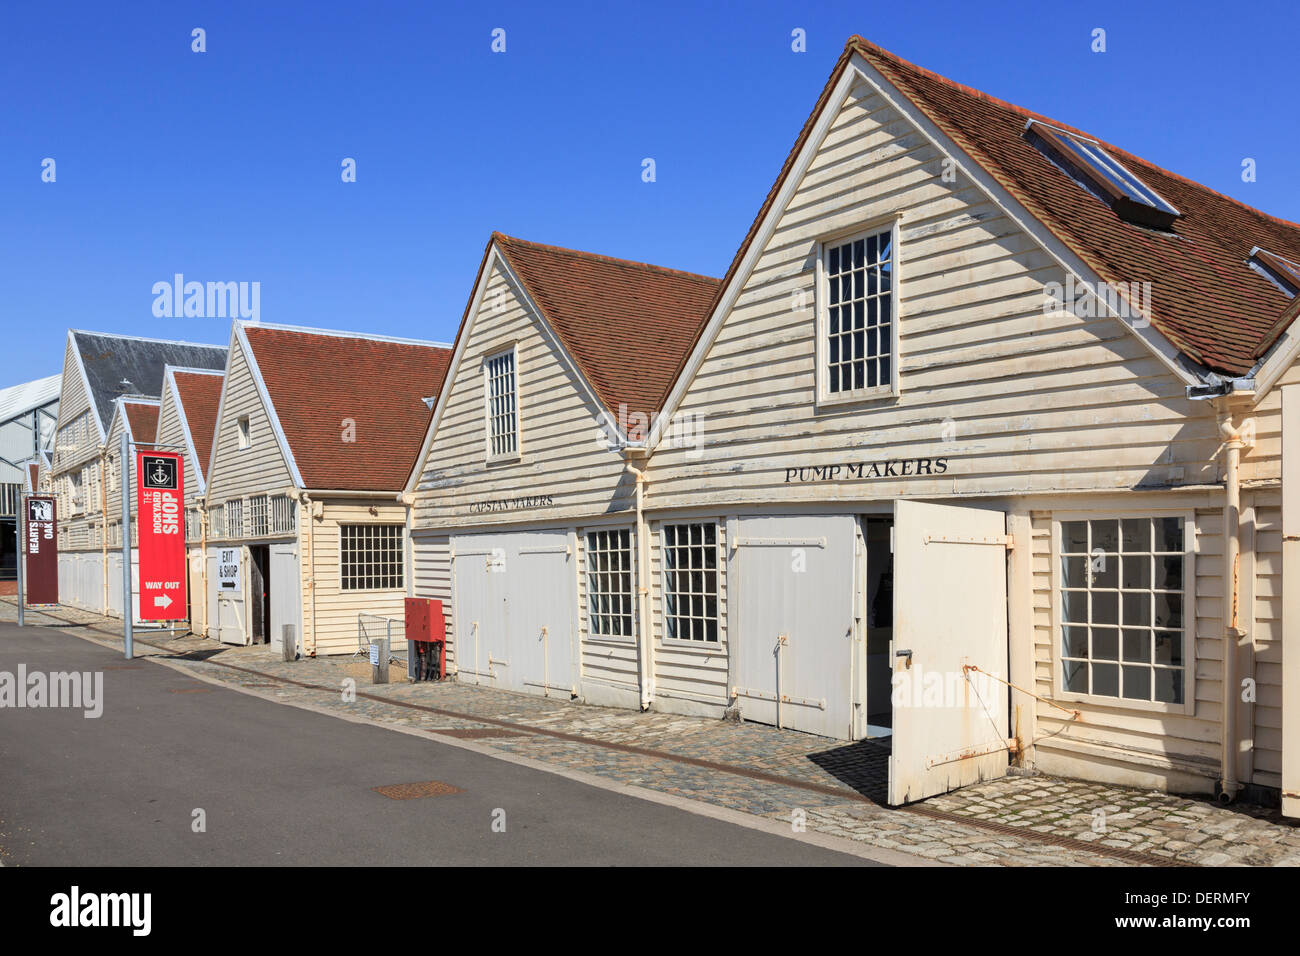 Old workshops in Historic Dockyard buildings at Chatham, Kent, England, UK, Britain - Stock Image